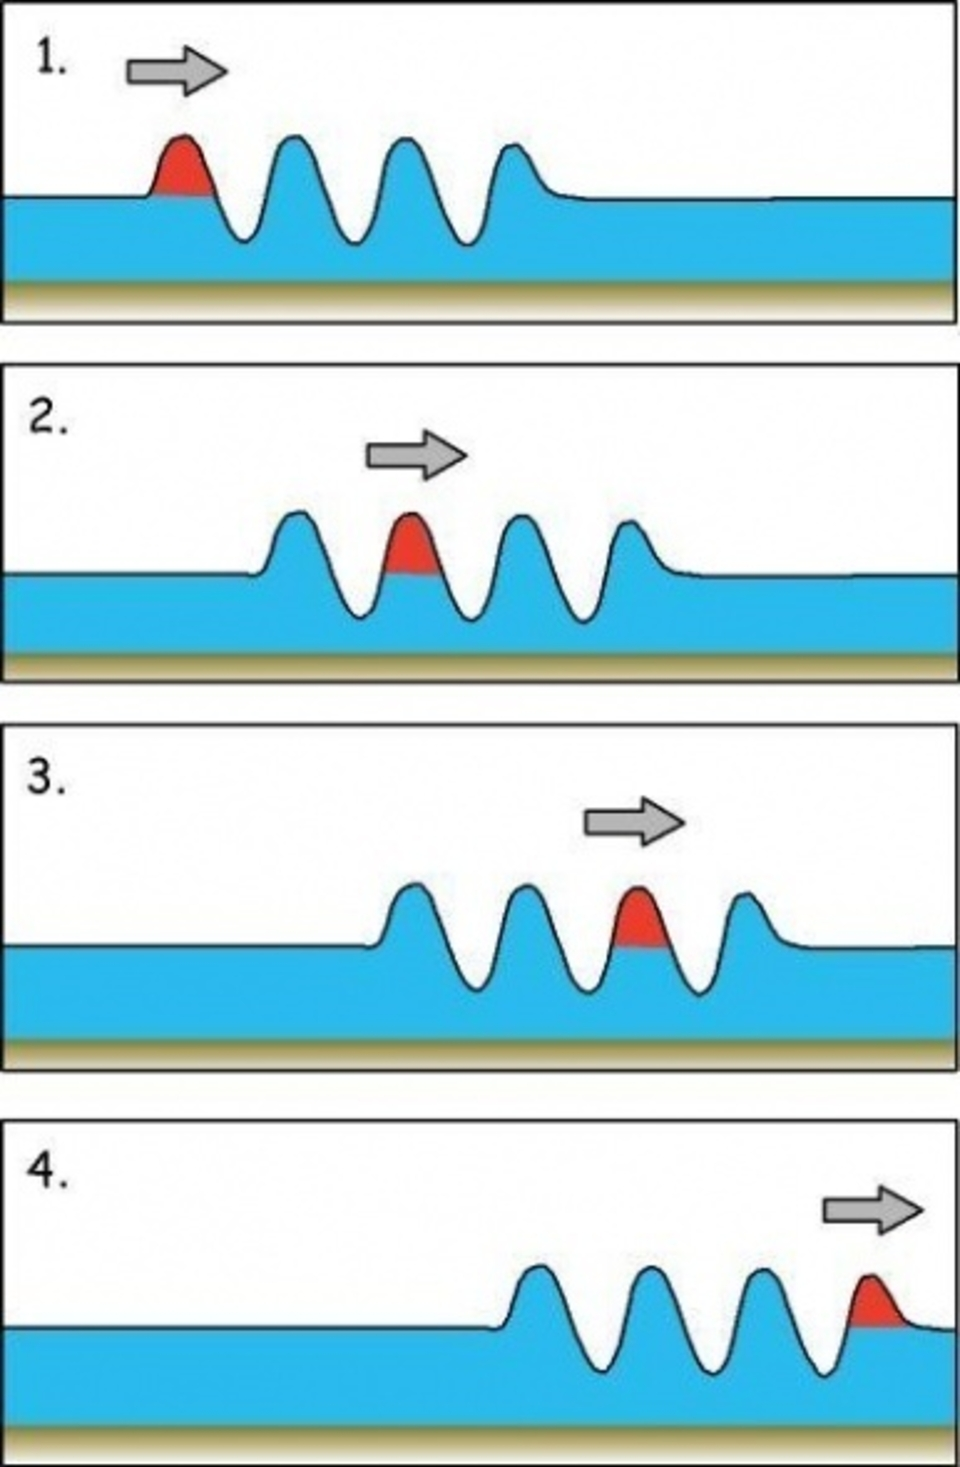 In deep water, each individual wave in a group propagates at twice the speed of the group, resulting in a constant flow of waves from the back of the group to the front.  Individual waves do not last very long